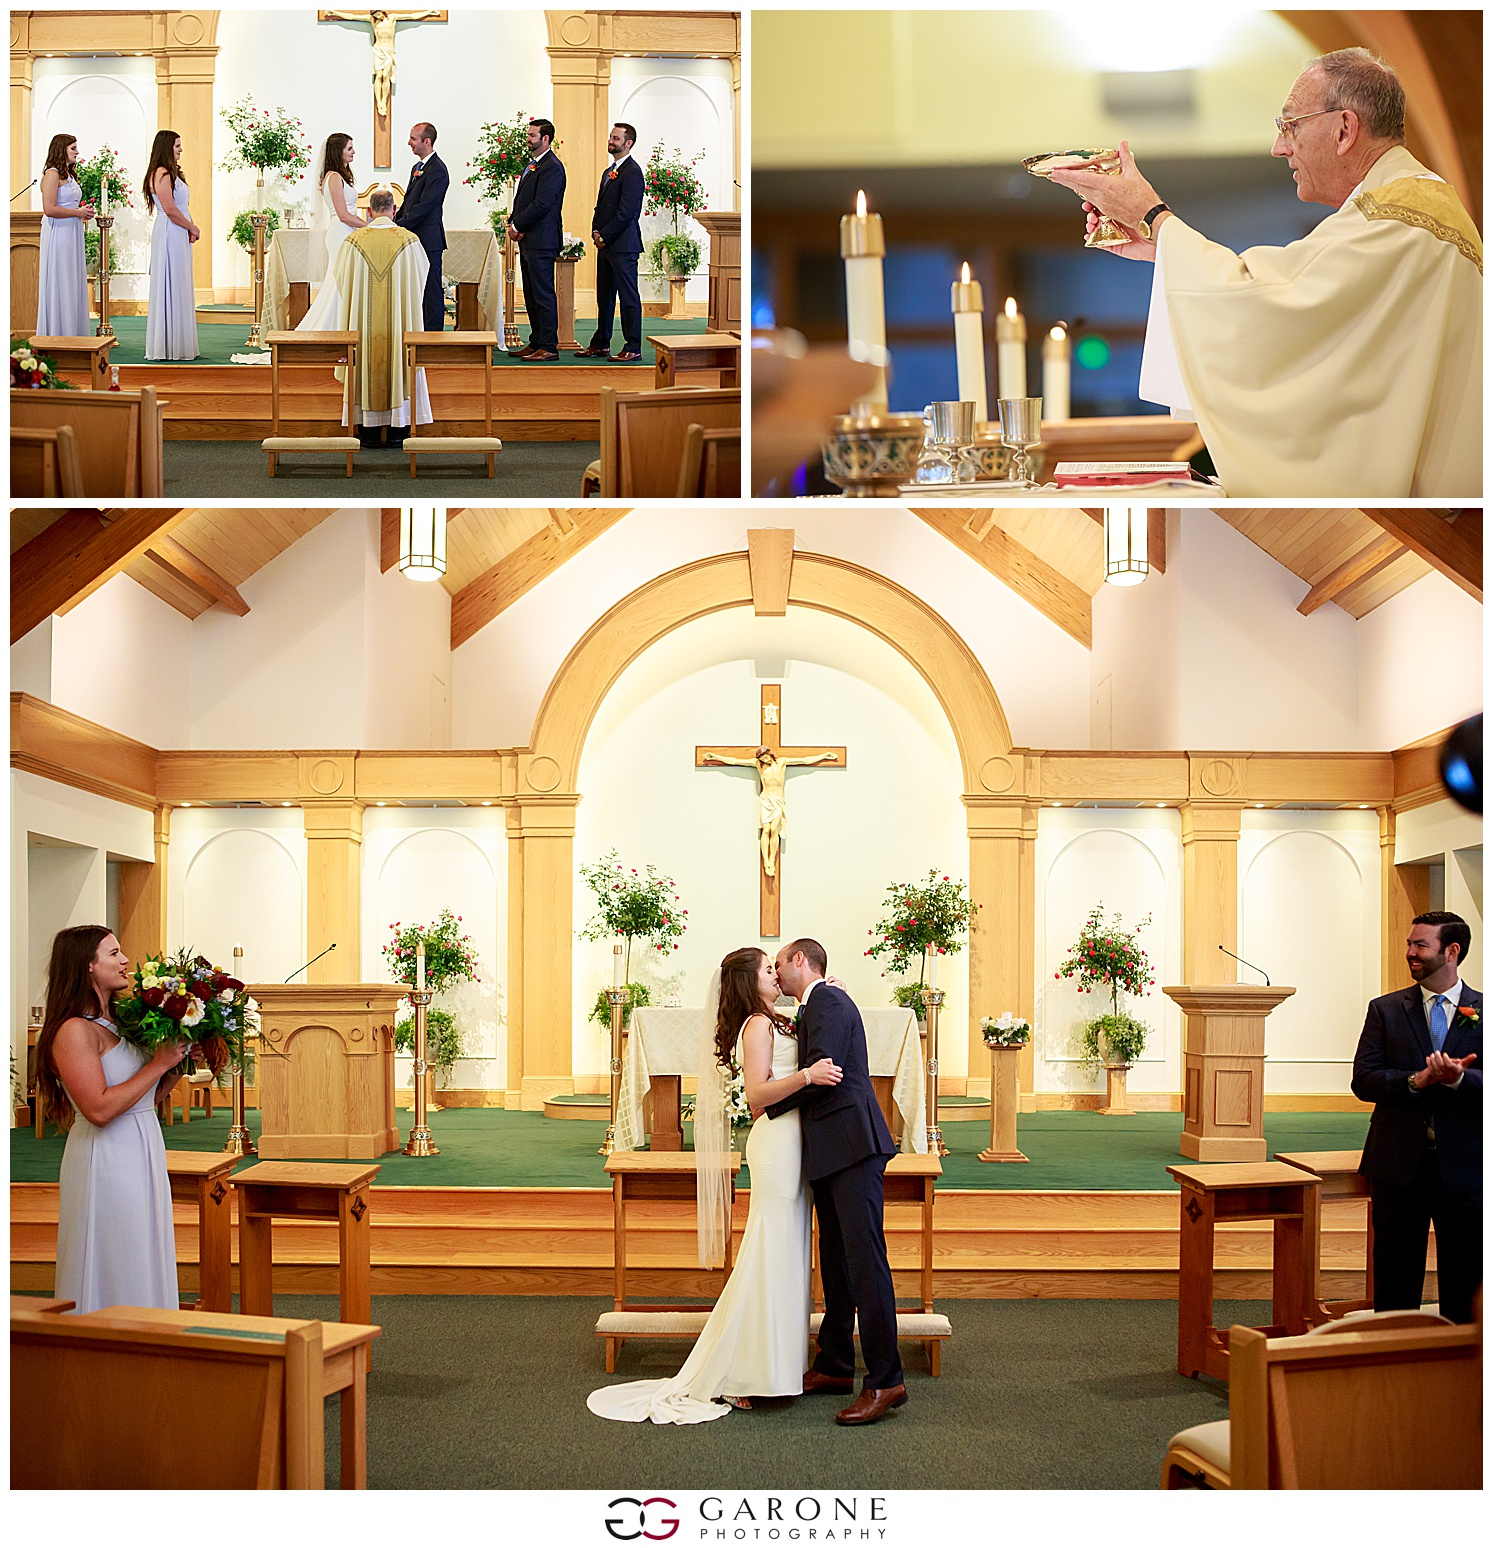 Church_Landing_Garone_Photography_Wedding_Sarah_Patrick_0026.jpg